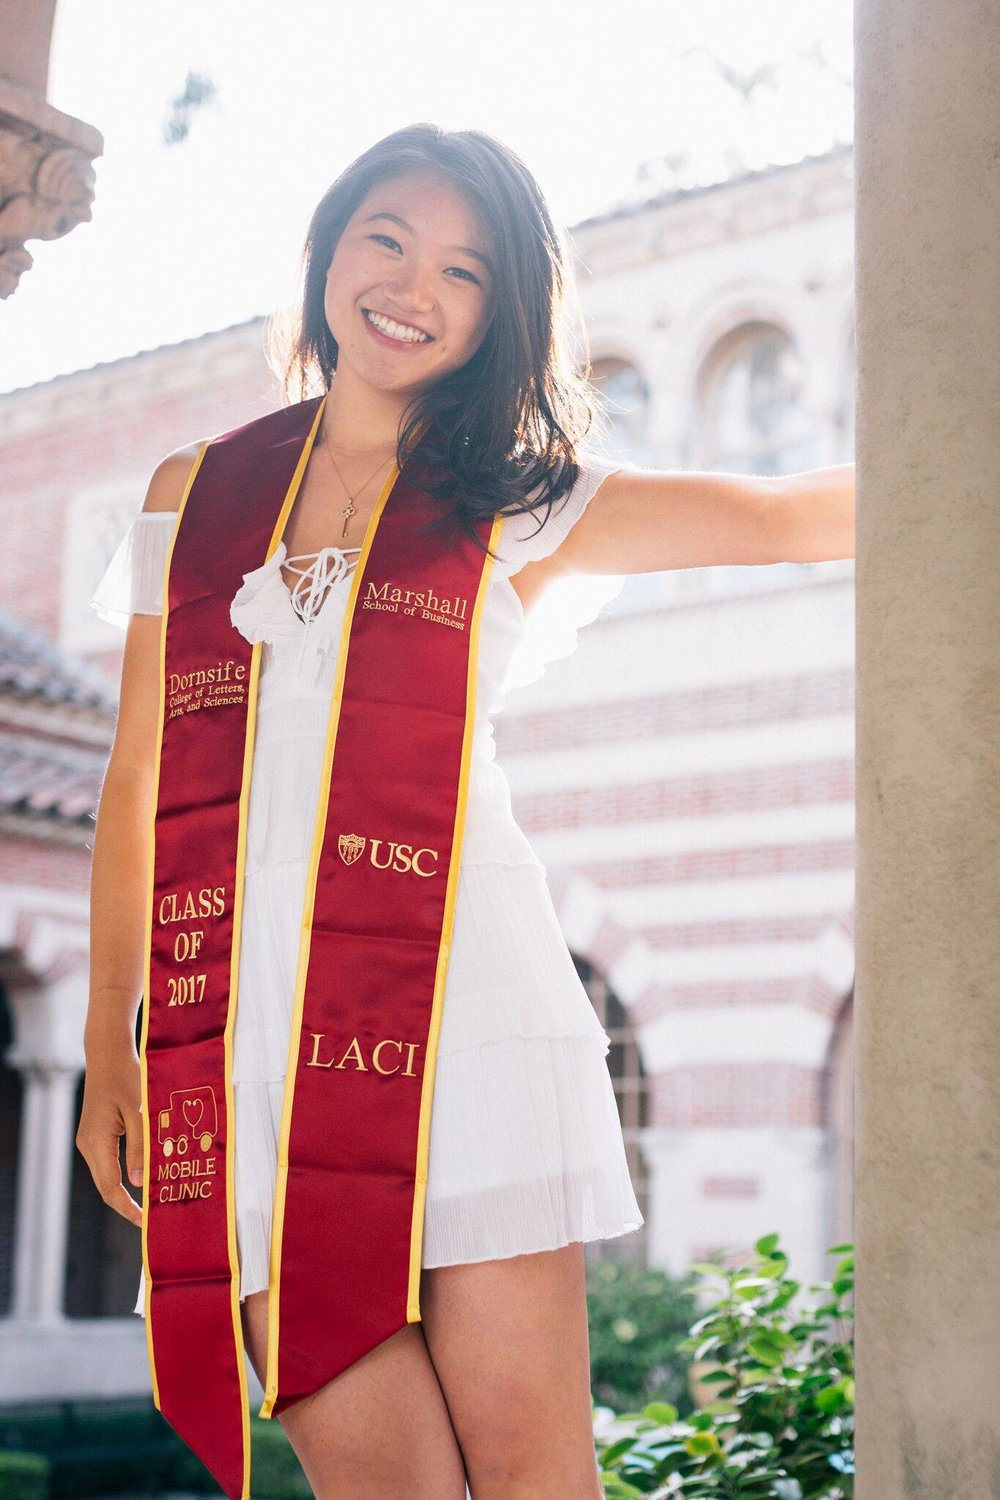 Monica liu    co-founder, president (2016-2017)   plans after graduation:  Attending the stanford university school of medicine while managing cardinal free clinics.